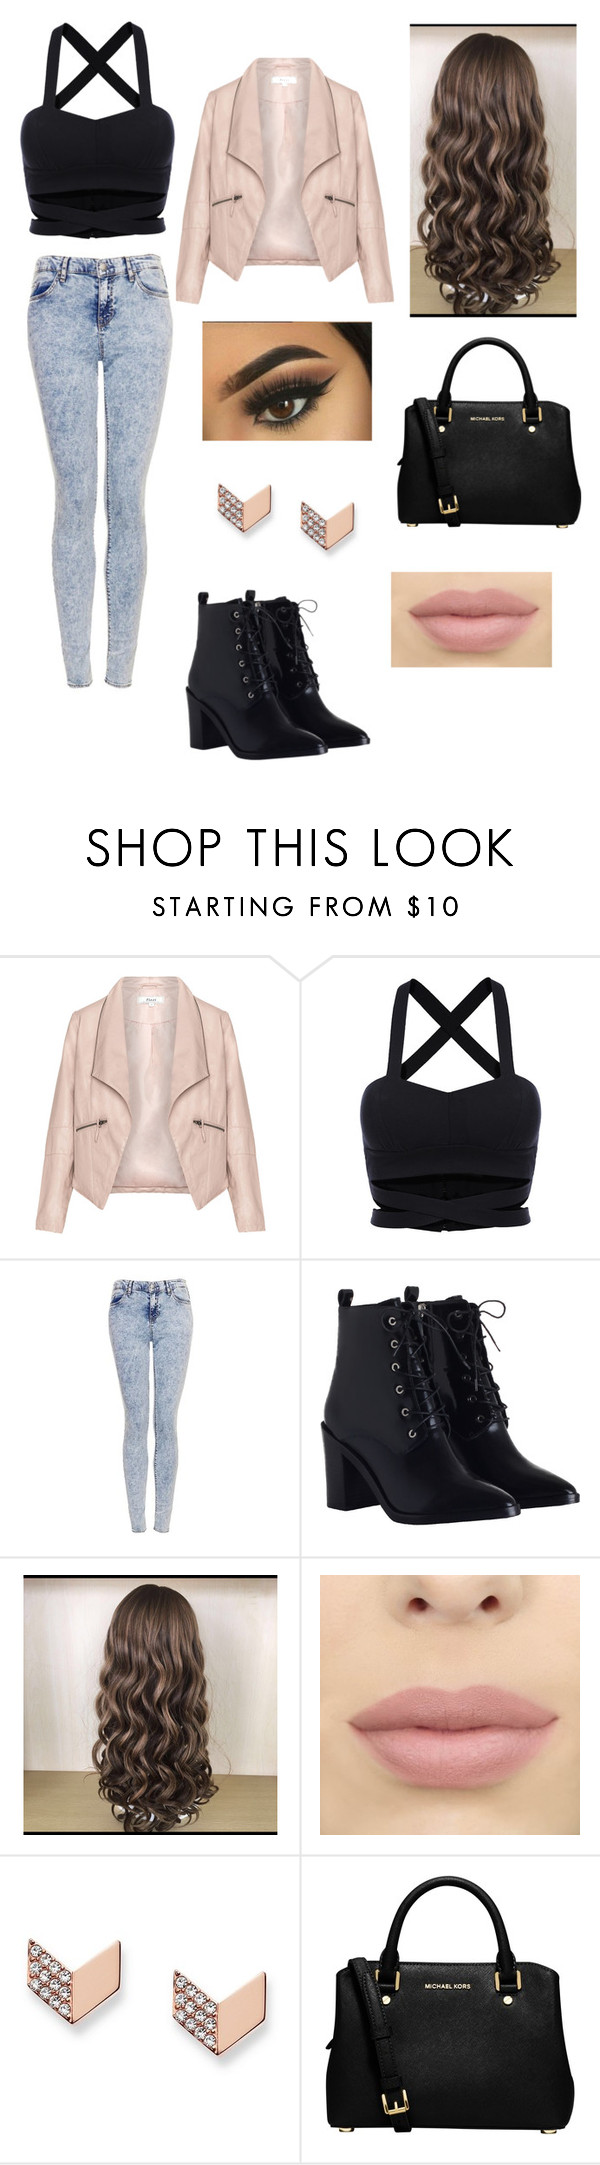 """Night out💗"" by qxeenallyyy ❤ liked on Polyvore featuring Zizzi, Topshop, Zimmermann, FOSSIL and MICHAEL Michael Kors"